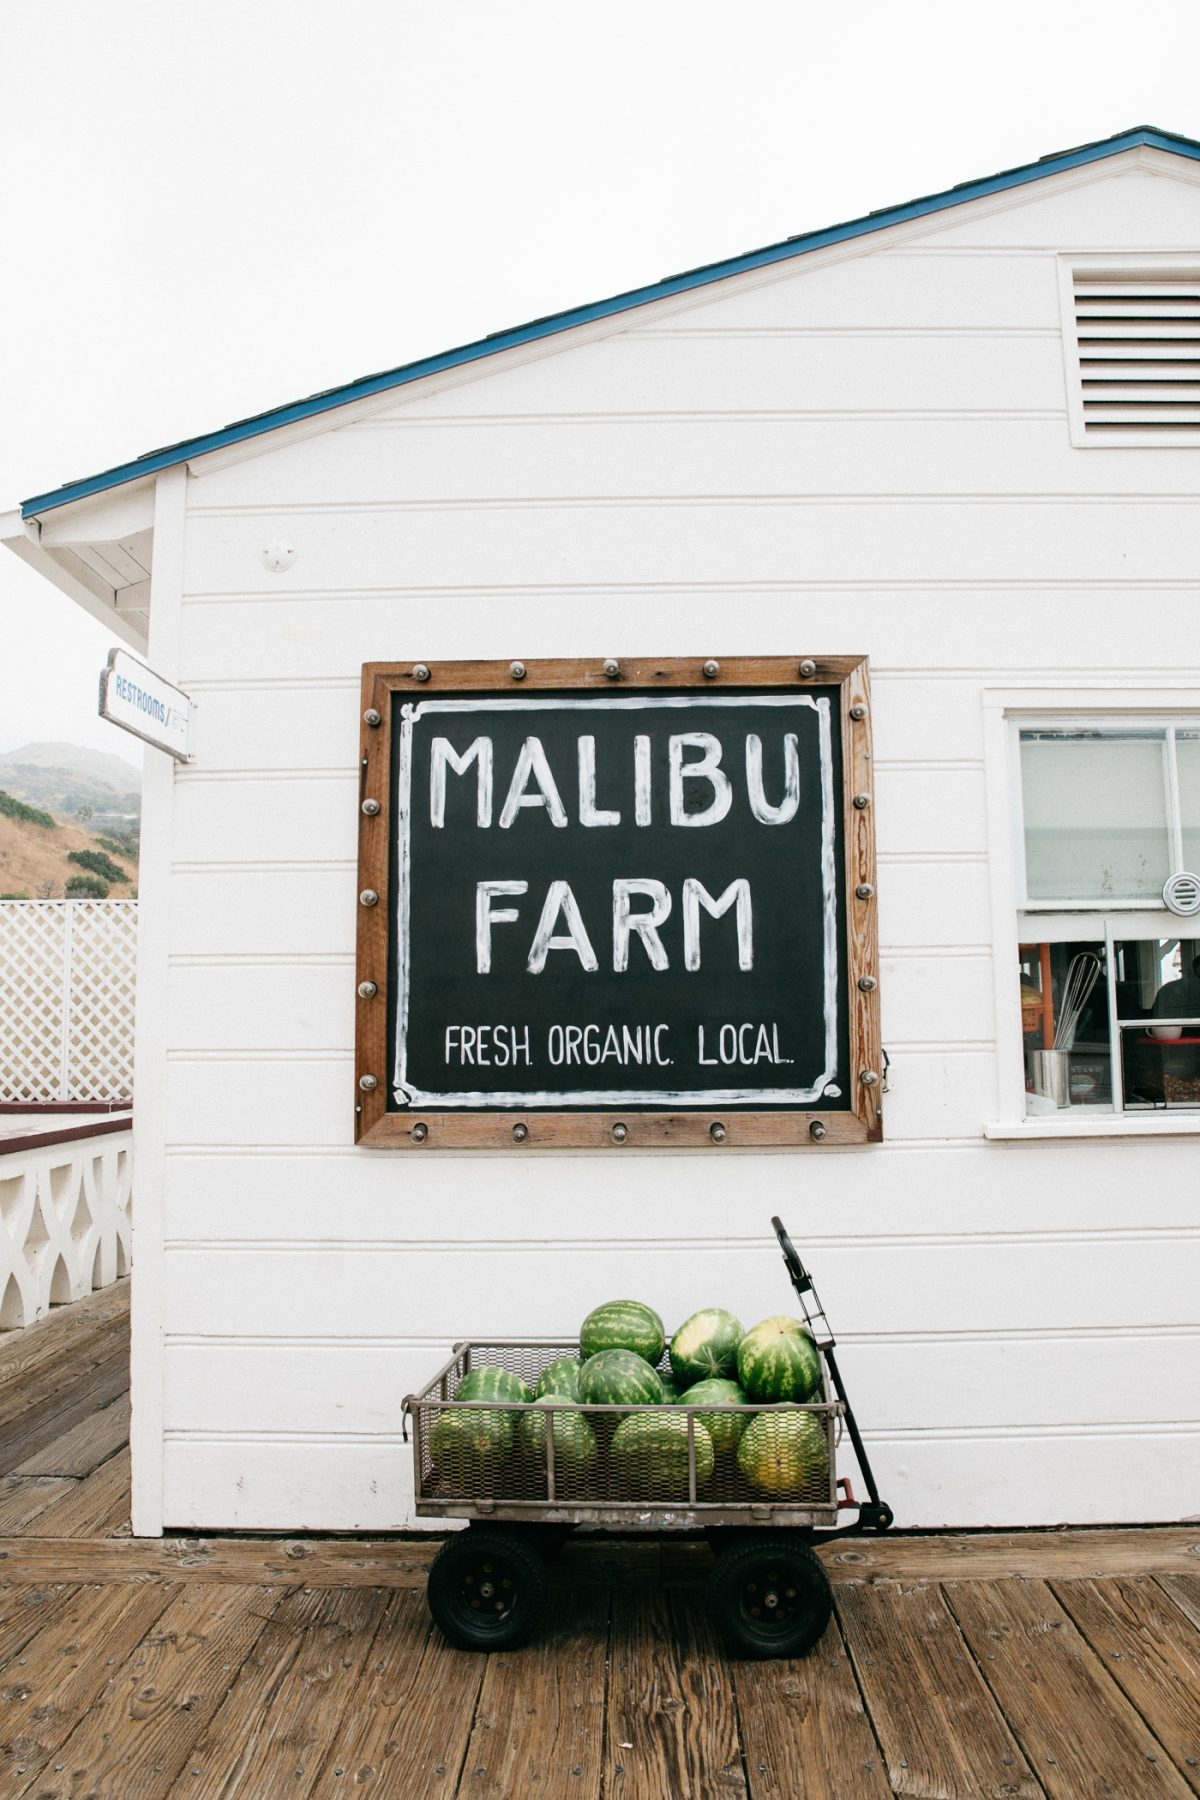 Malibu Farm, Breakfast at the Malibu Pier | Bikinis & Passports